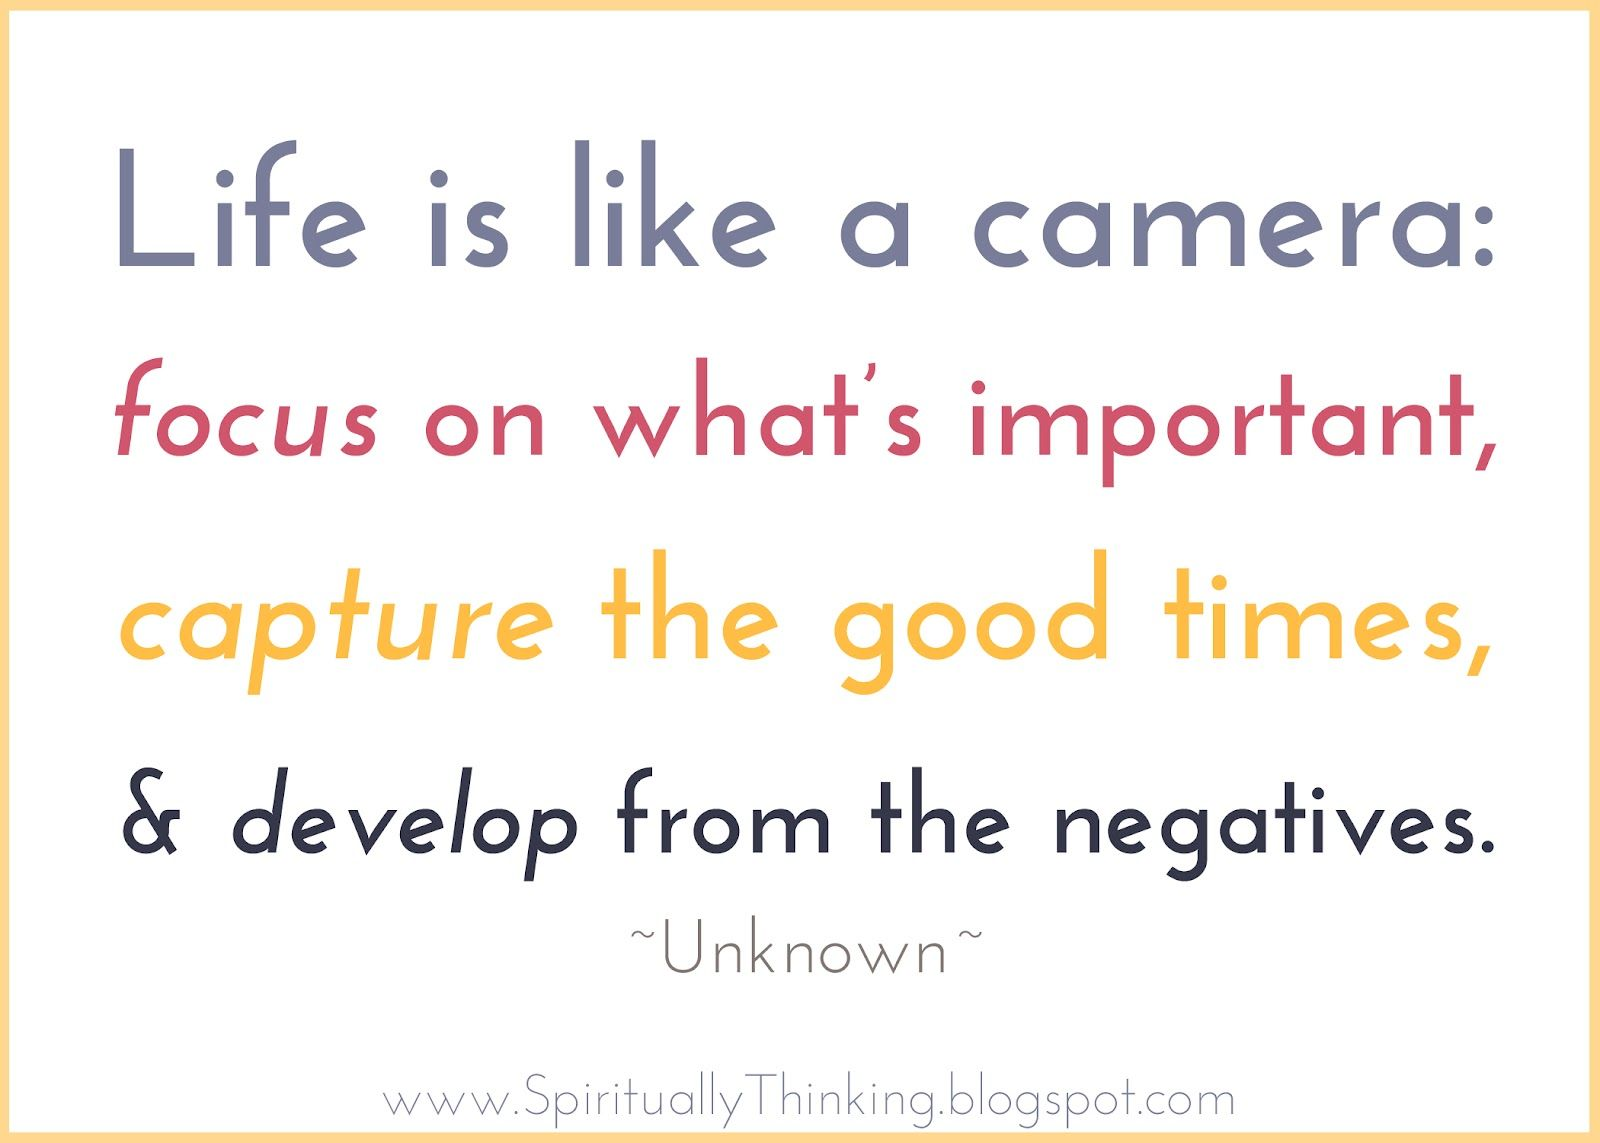 Quotes About Whats Important In Life Life Is Like A Camera Focus On What's Important Capture The Good